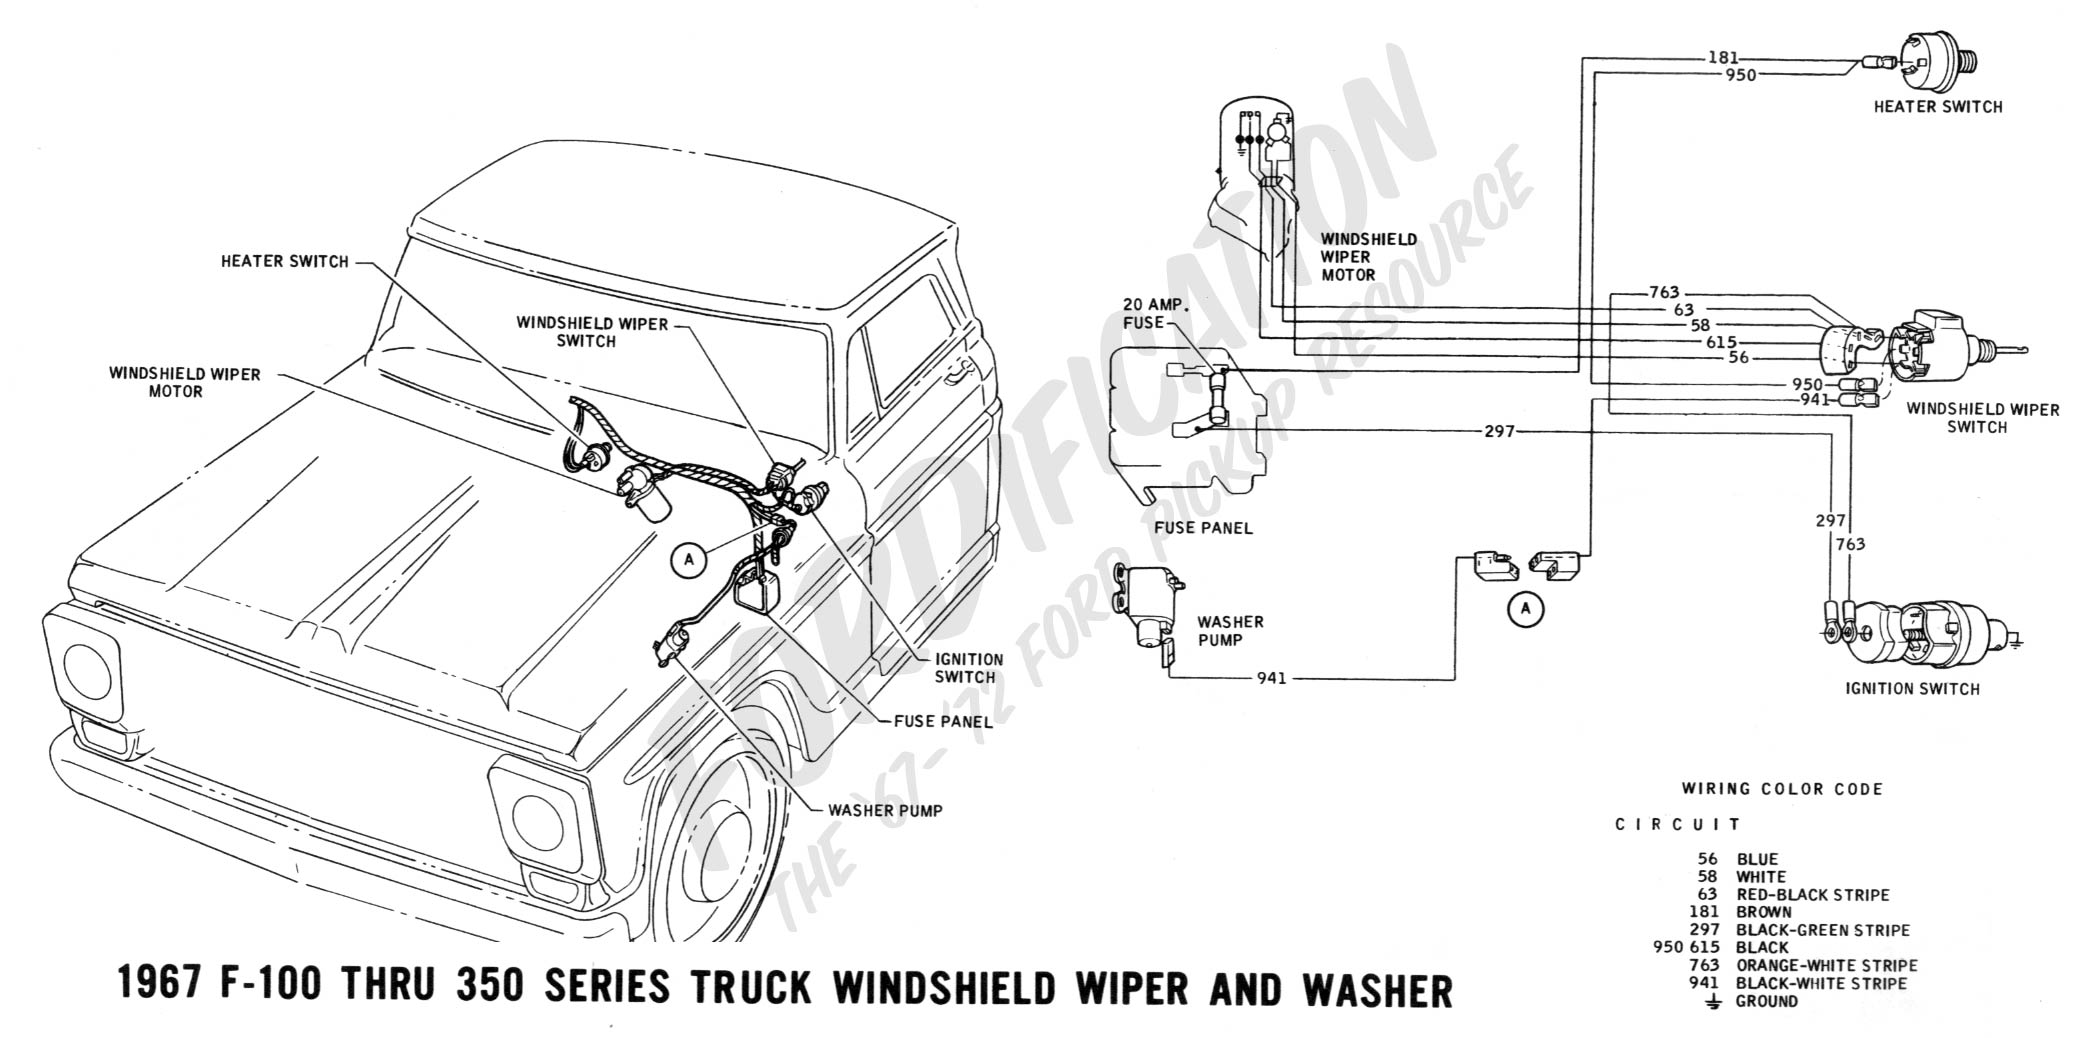 firebird wiper motor wiring diagram wiring diagram third level GM Wiper Motor Diagram ford wiper motor wiring wiring schematic data wiper motor cable 1965 corvette wiper switch wiring wiring